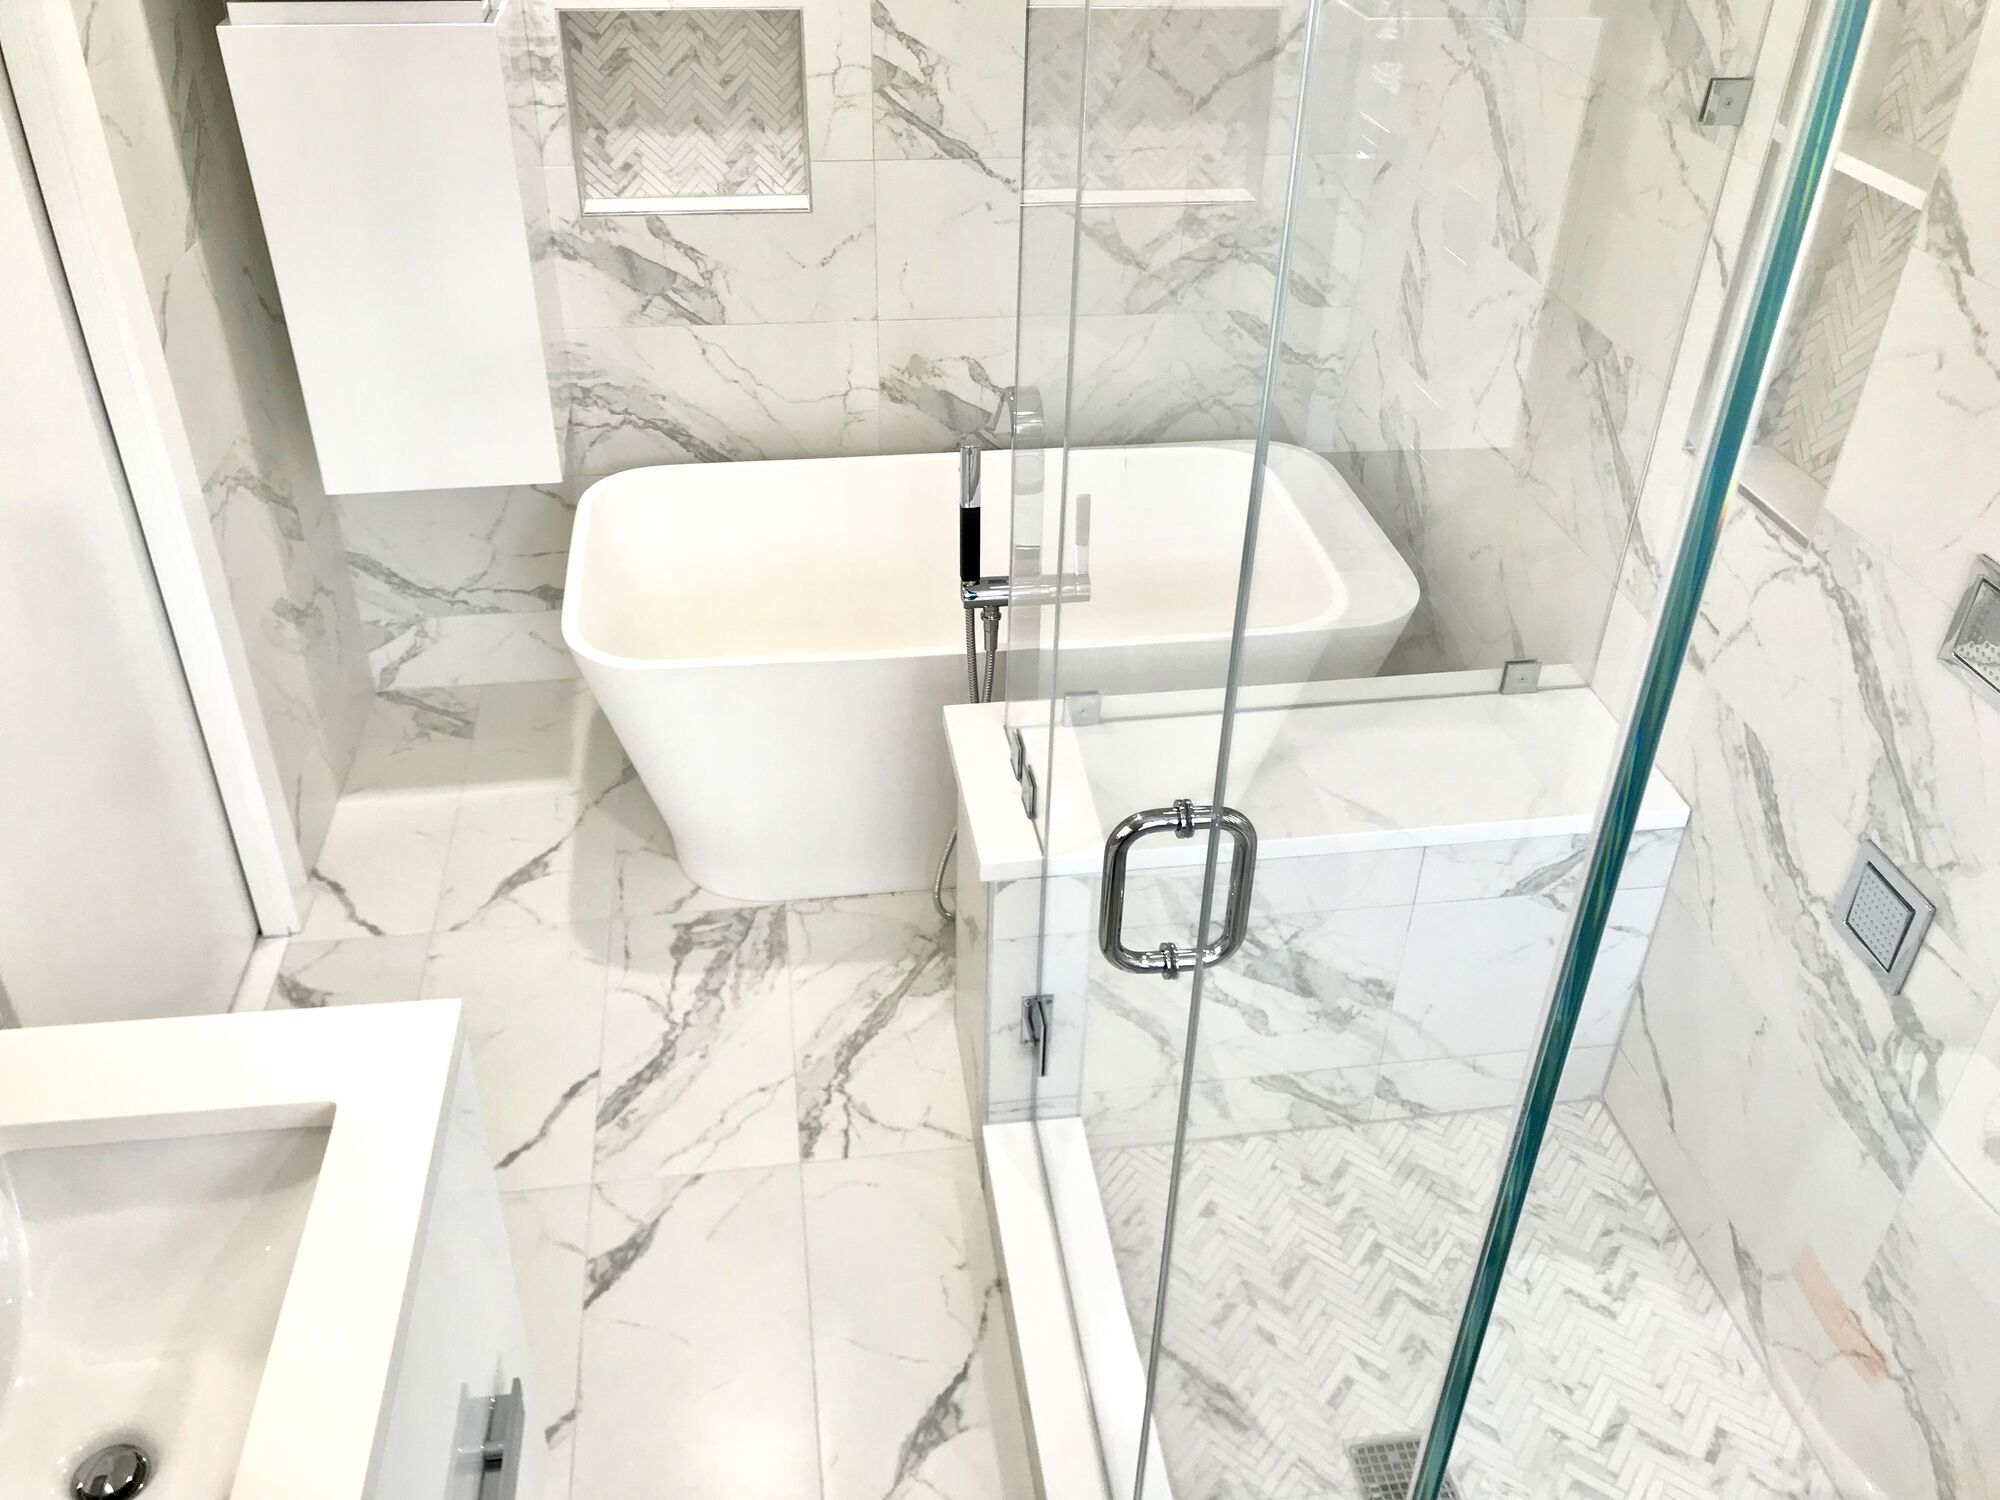 Freestanding Tub, Custom Shower _ Bench, Tile Walls in a compact bathroom in Maplewood, Essex County NJ